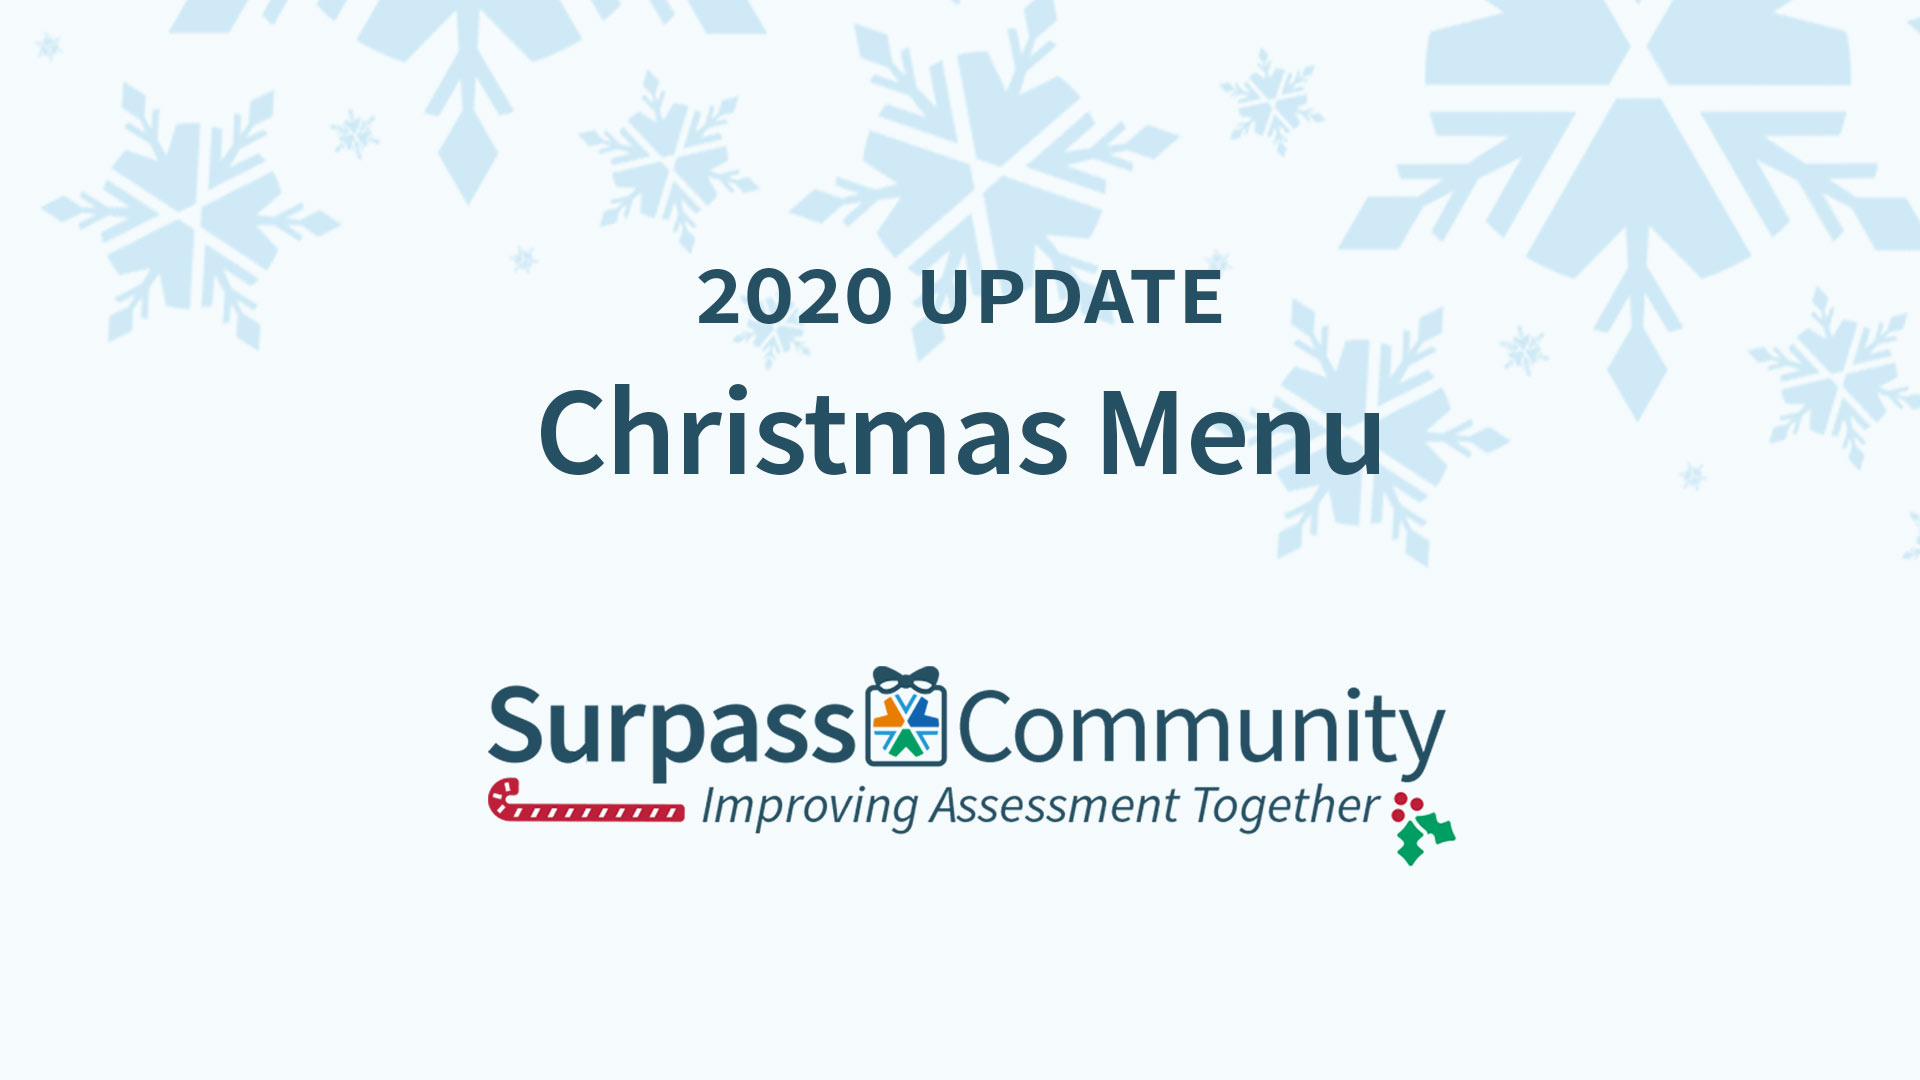 Surpass Community 2020 Updates in a Christmas Menu